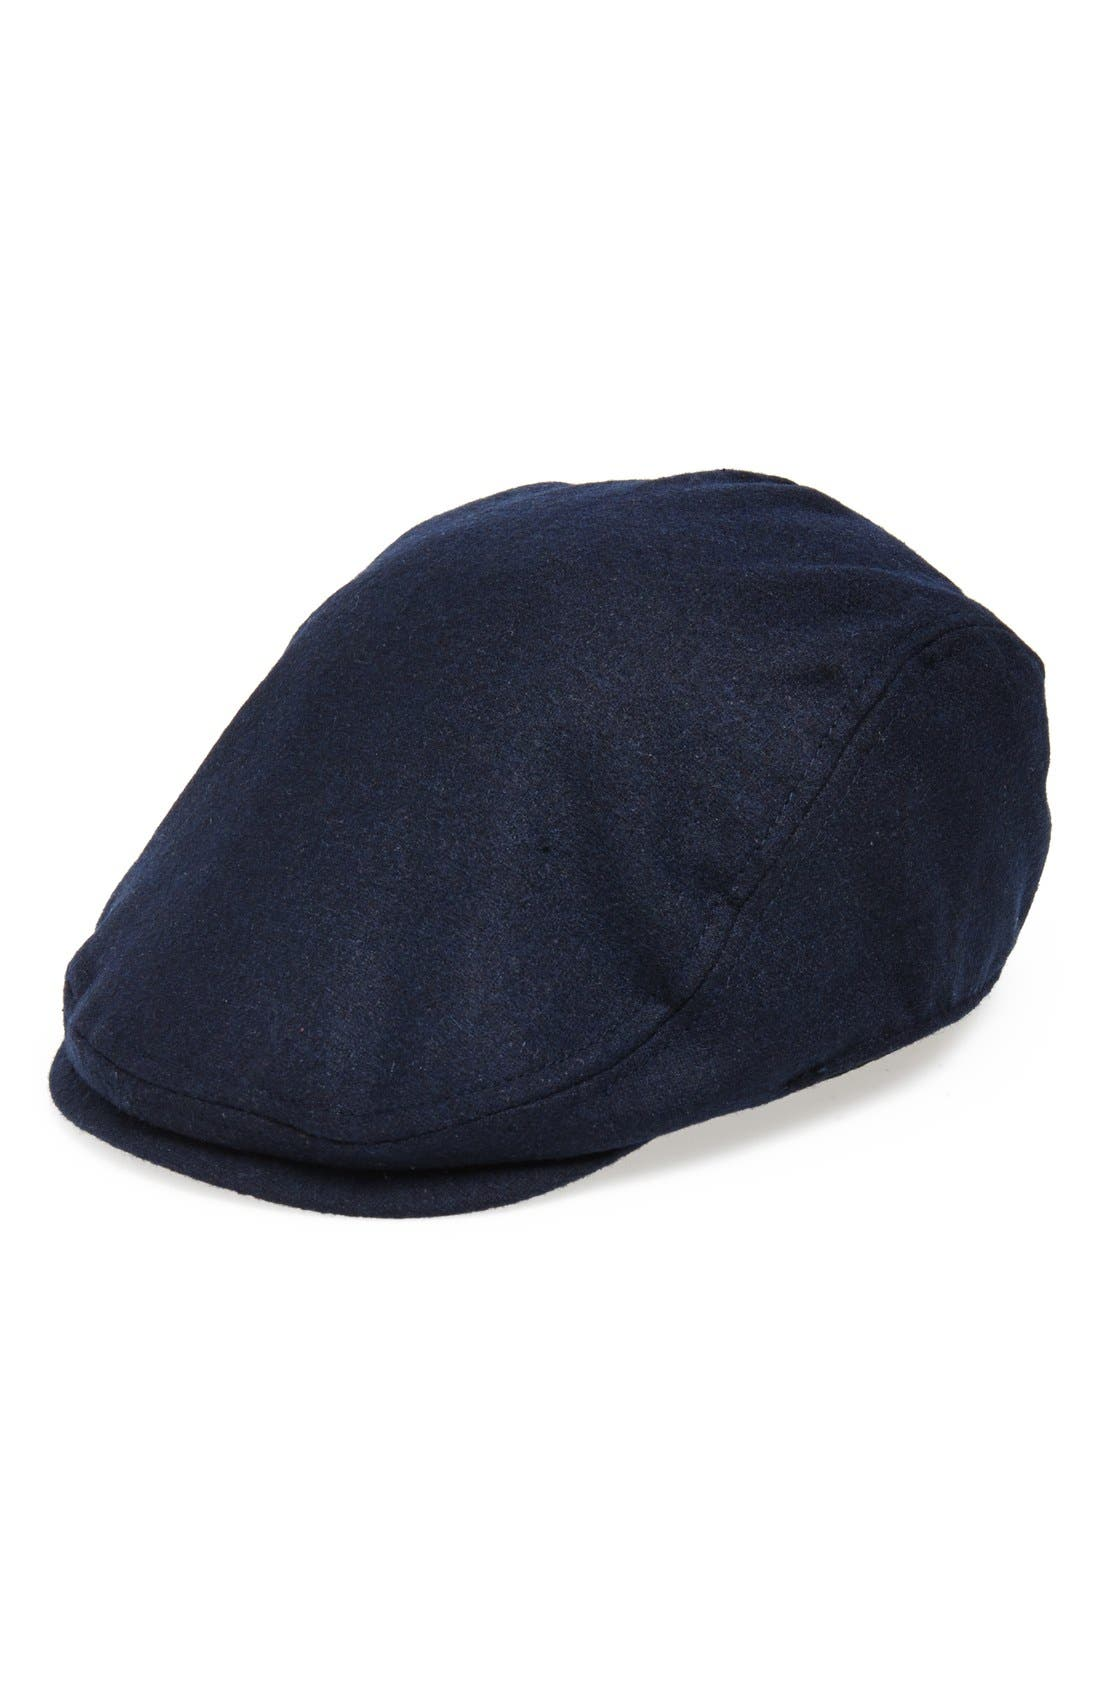 Glory Hats by Goorin 'Mikey' Driving Cap